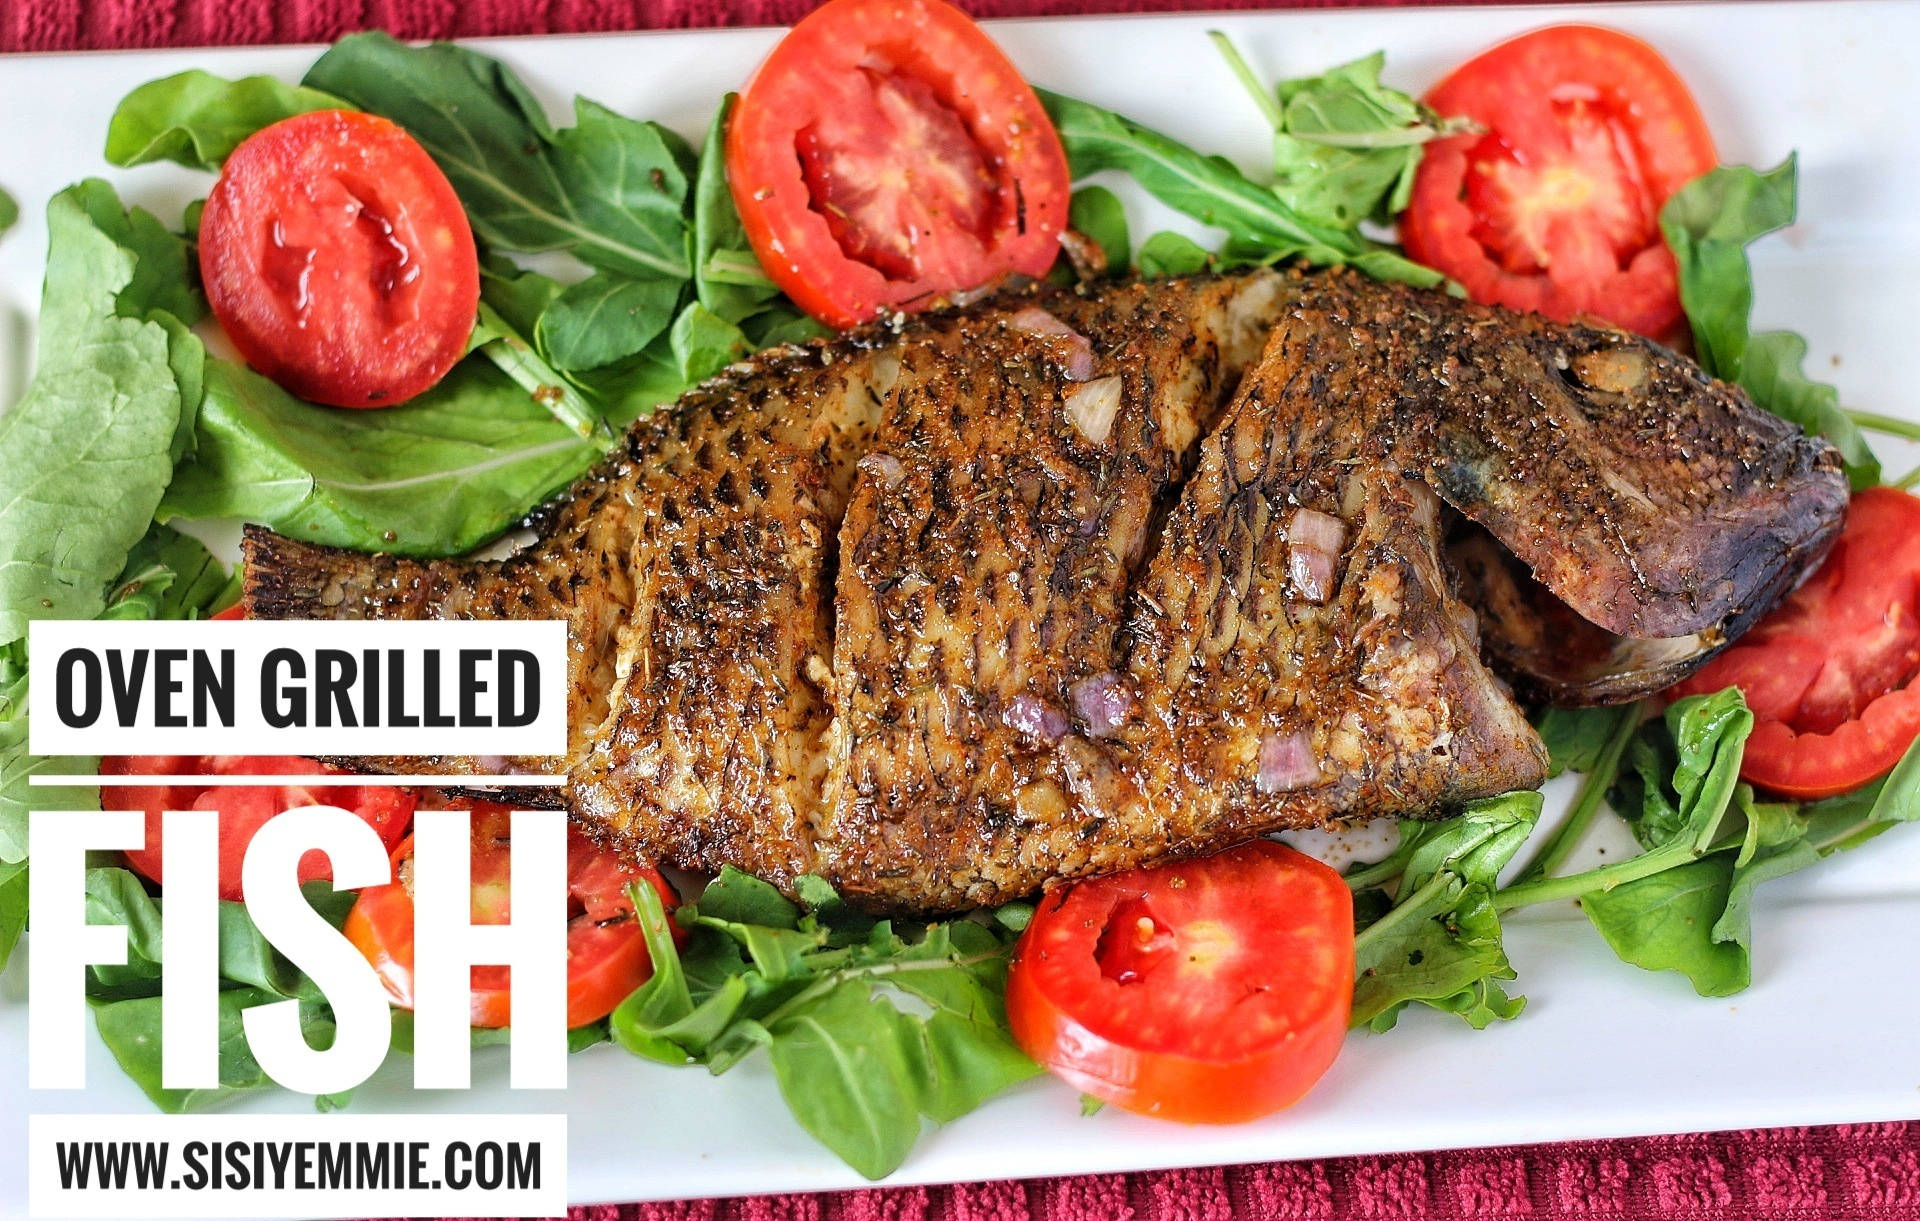 OVEN GRILLED TILAPIA FISH!